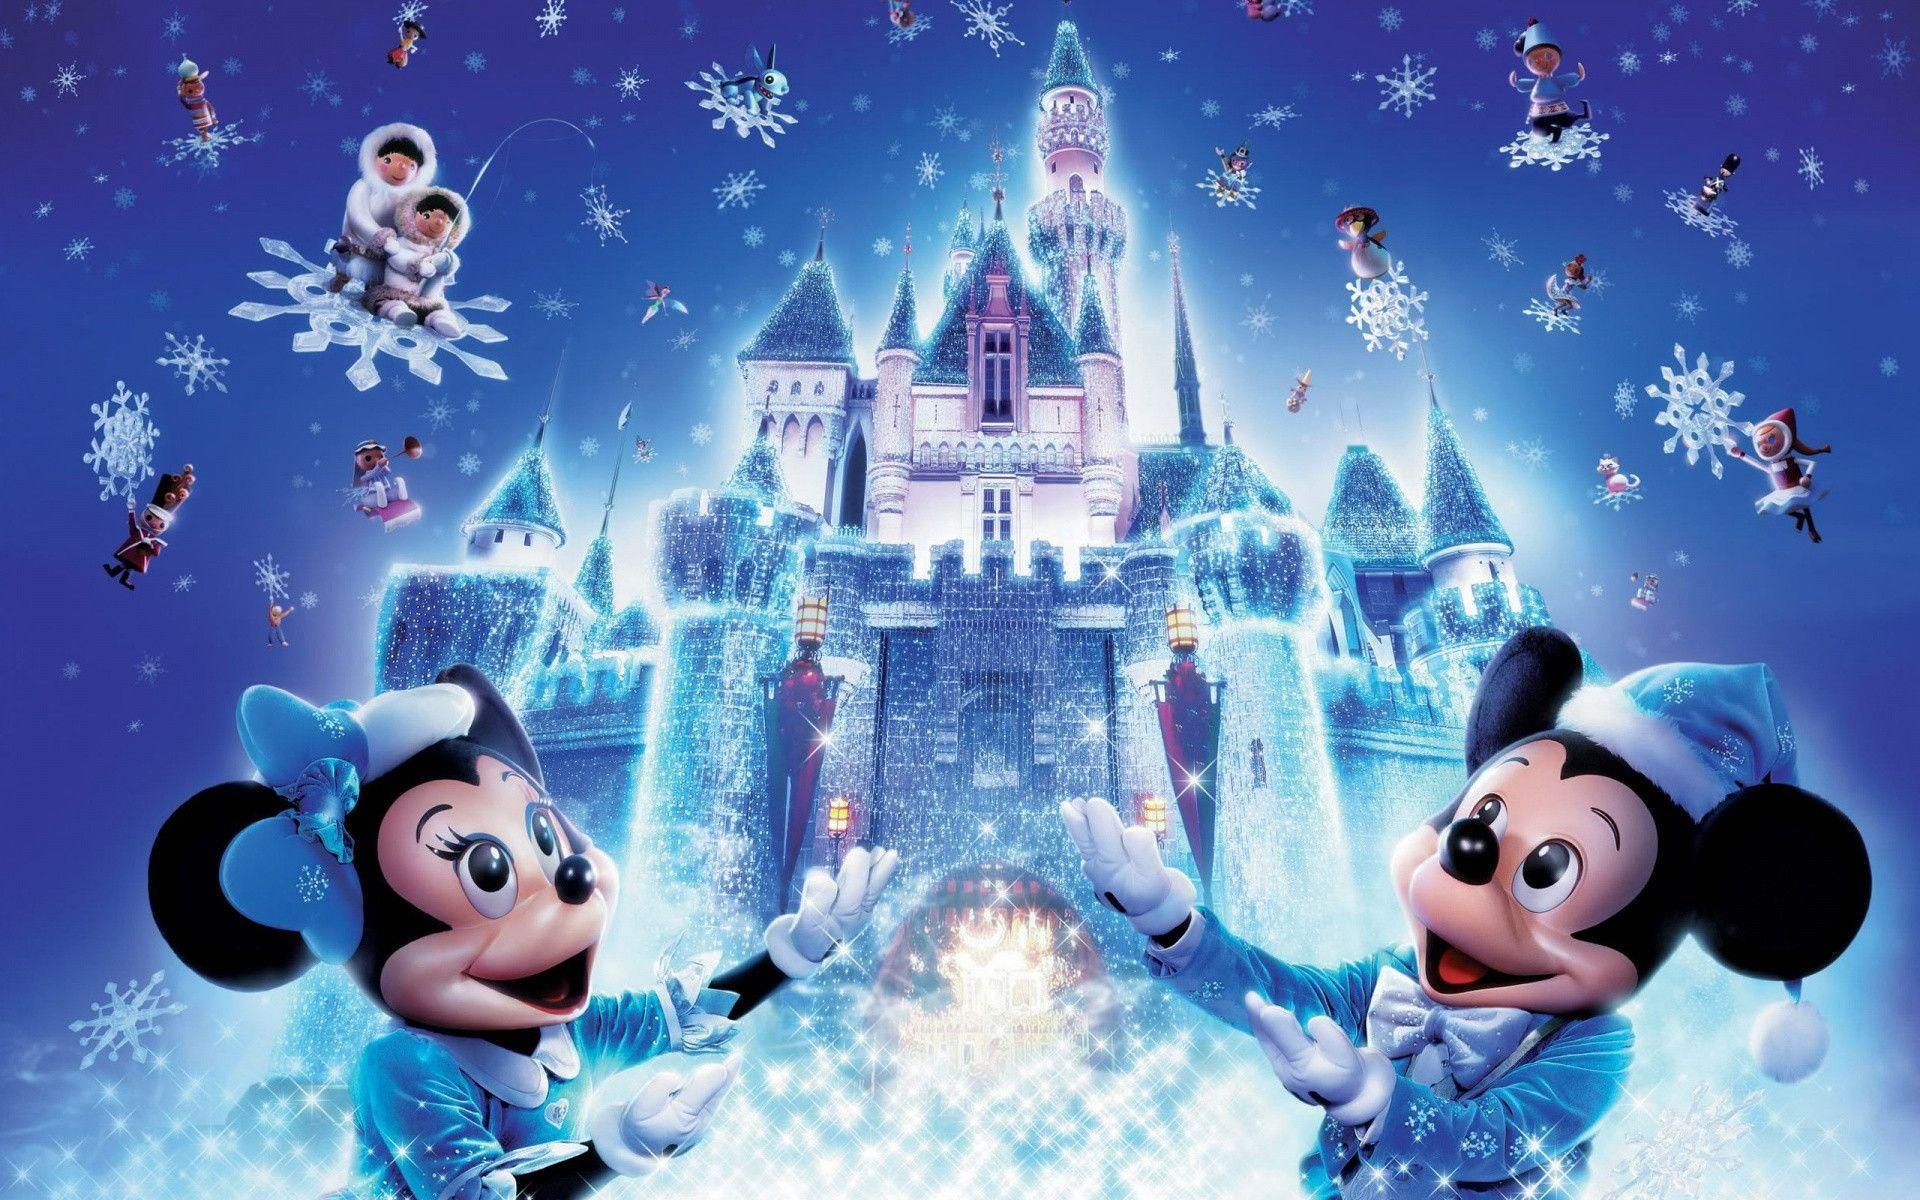 Walt Disney Christmas Wallpaper.Disney Christmas Wallpapers Wallpaper Cave